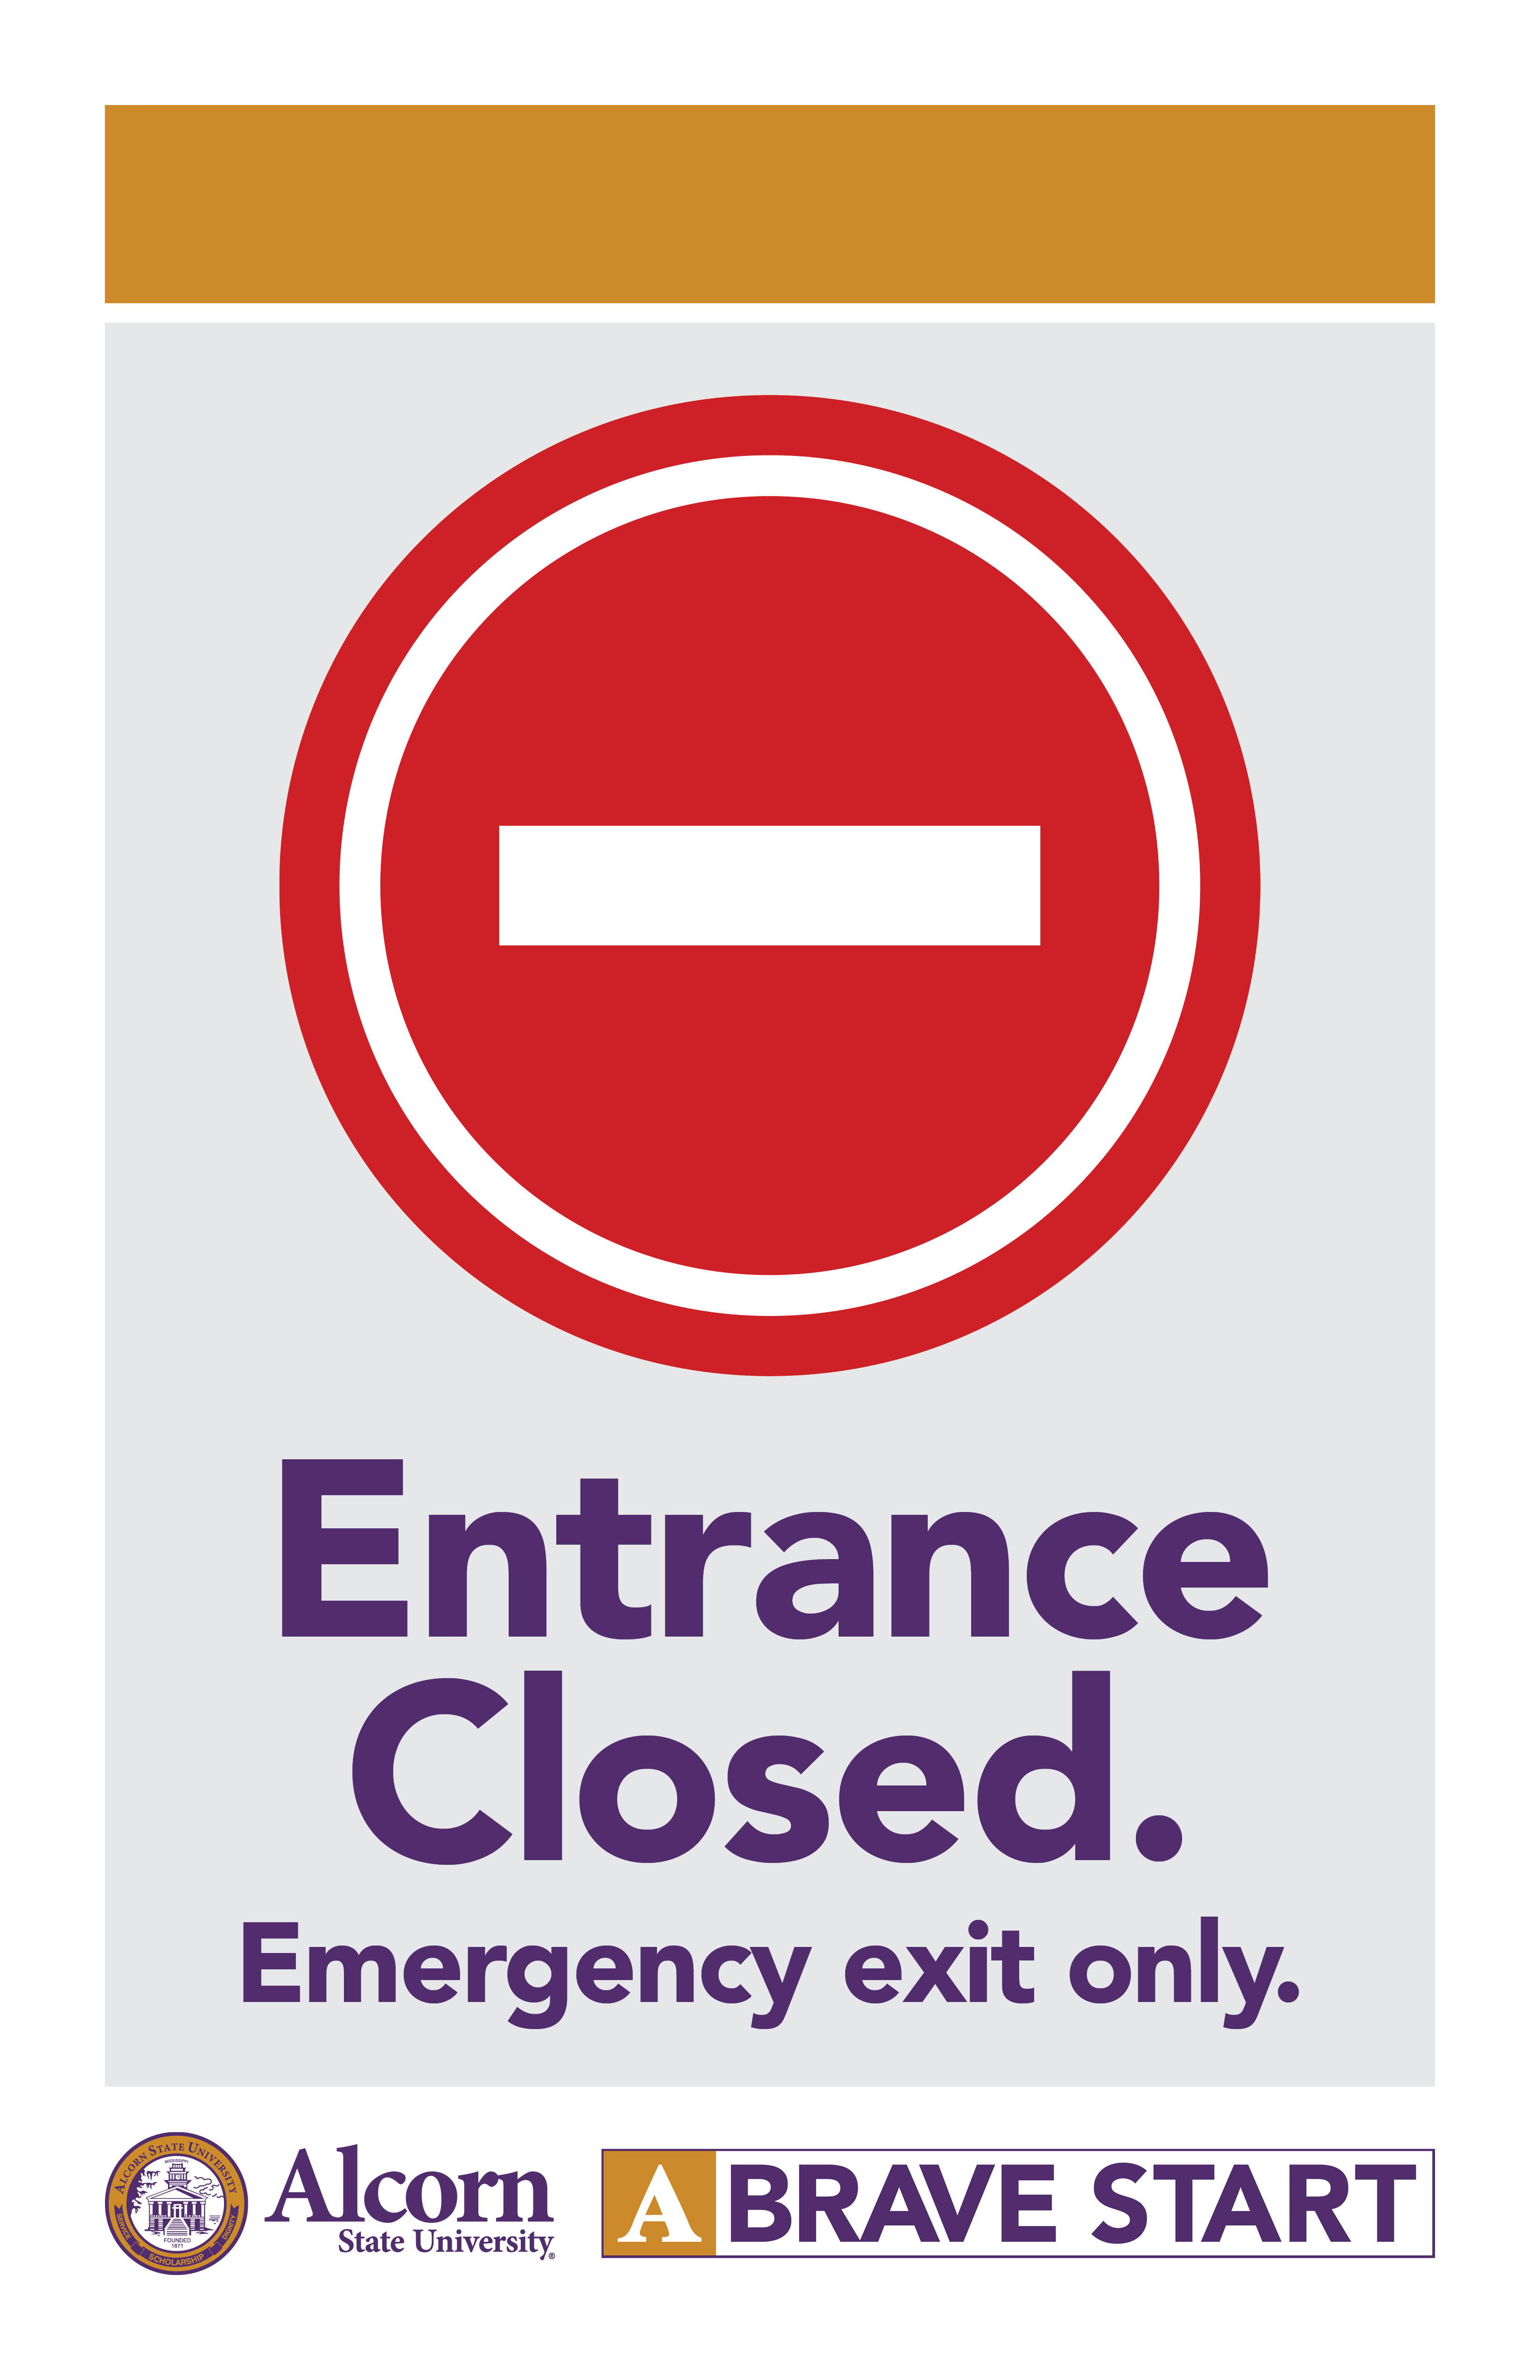 (Picture of no entry red circle) Entrance Closed. Emergency exit only. (Alcorn logo mark. A Brave Start logo mark.)